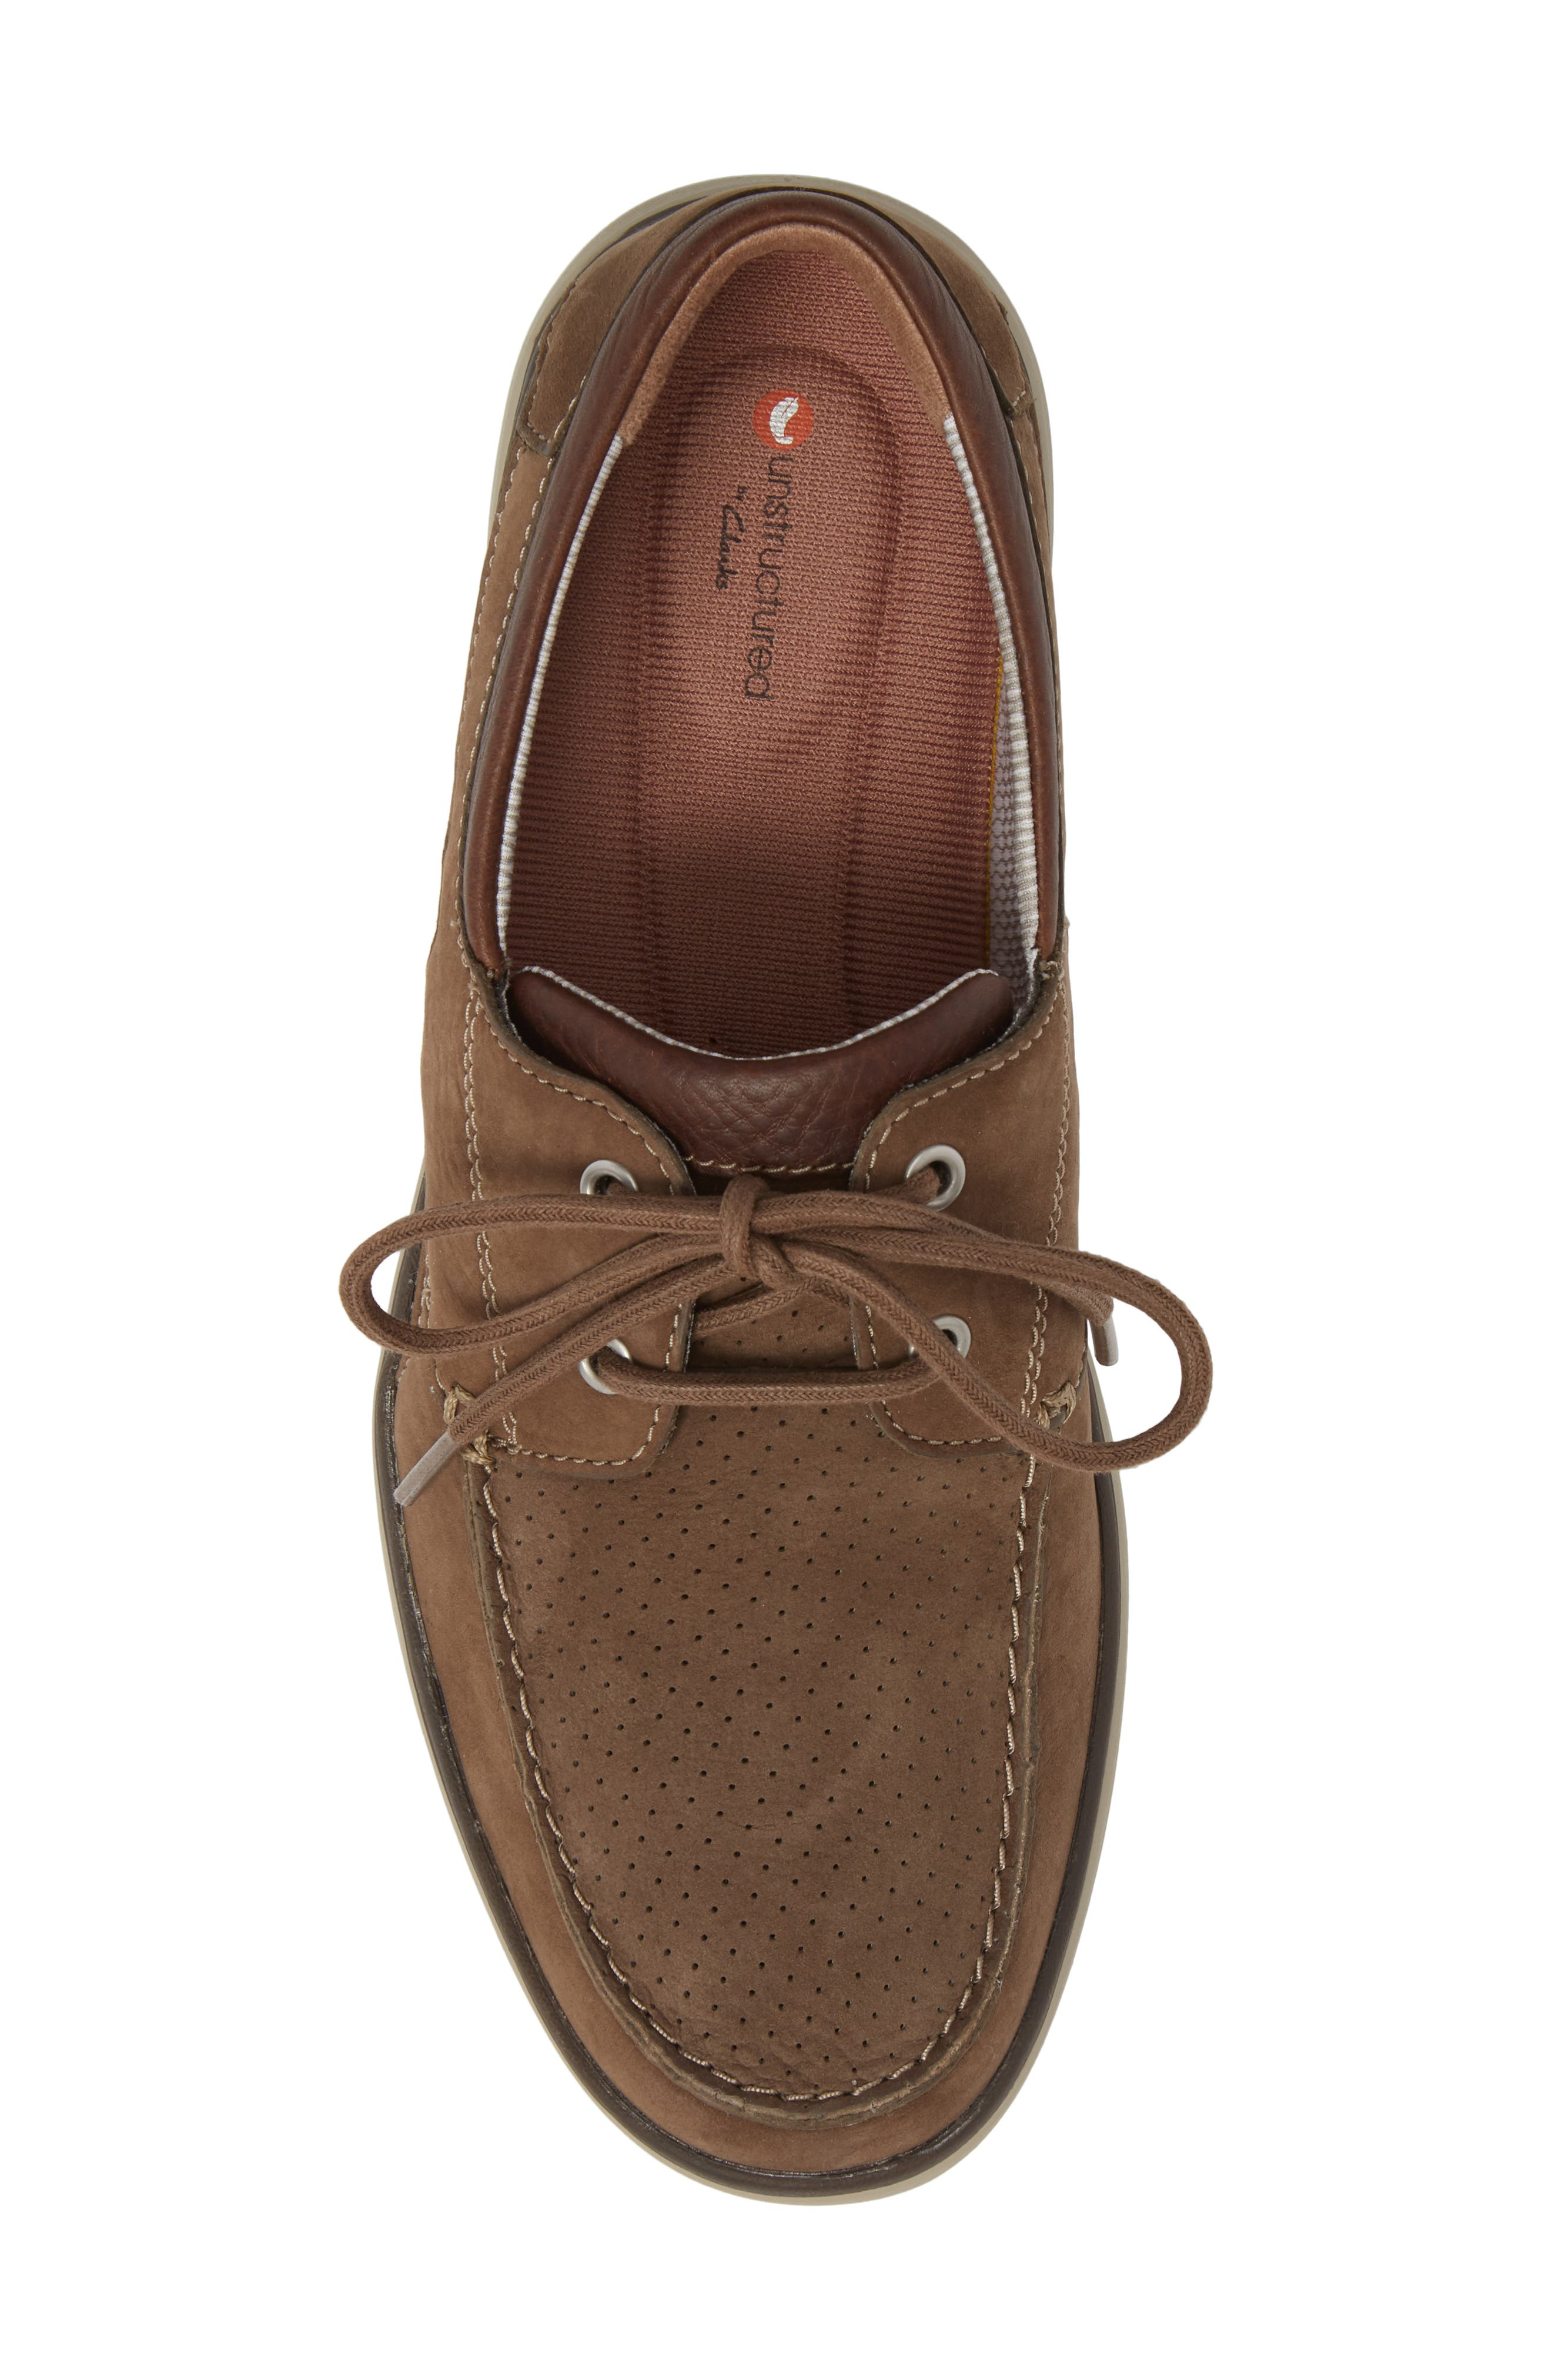 Clarks<sup>®</sup> Unabobe Step Boat Shoe,                             Alternate thumbnail 5, color,                             Olive Nubuck